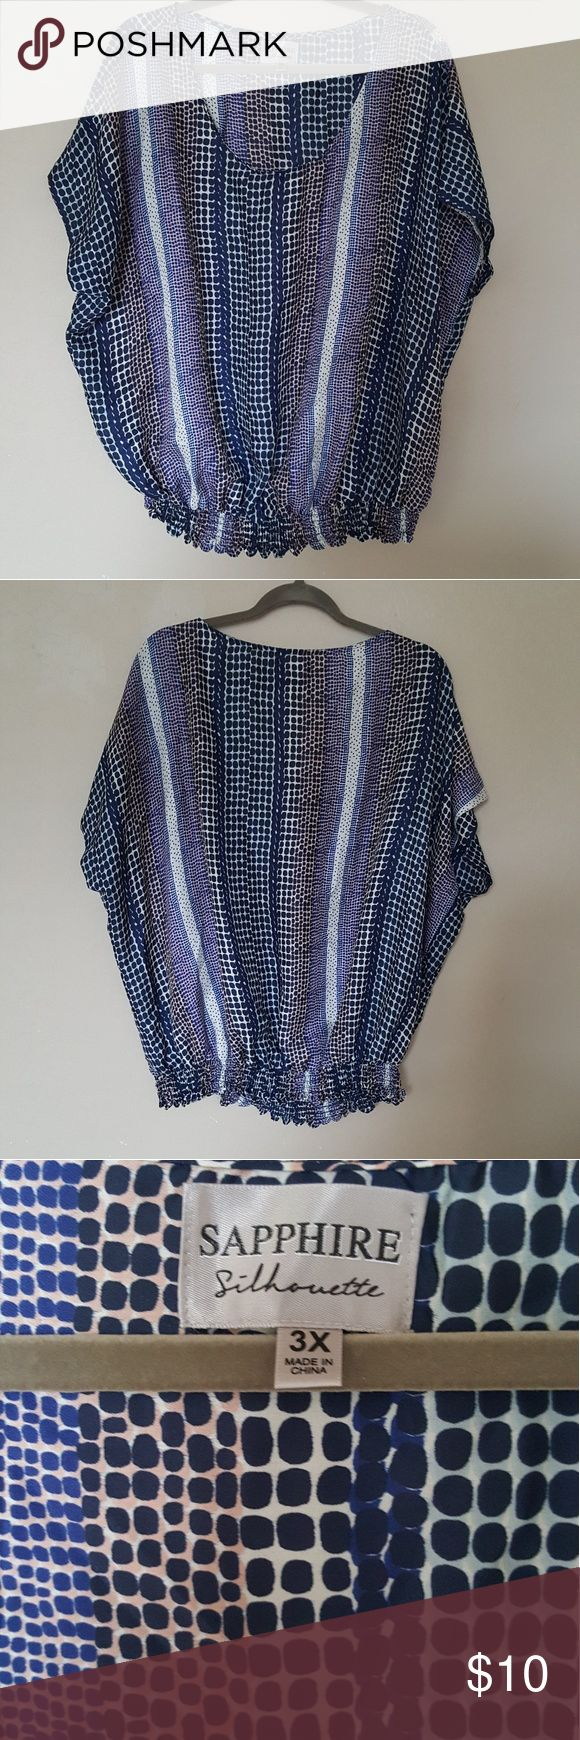 Sapphire short sleeve plus blouse top Good condition, no tears, no stains Tops